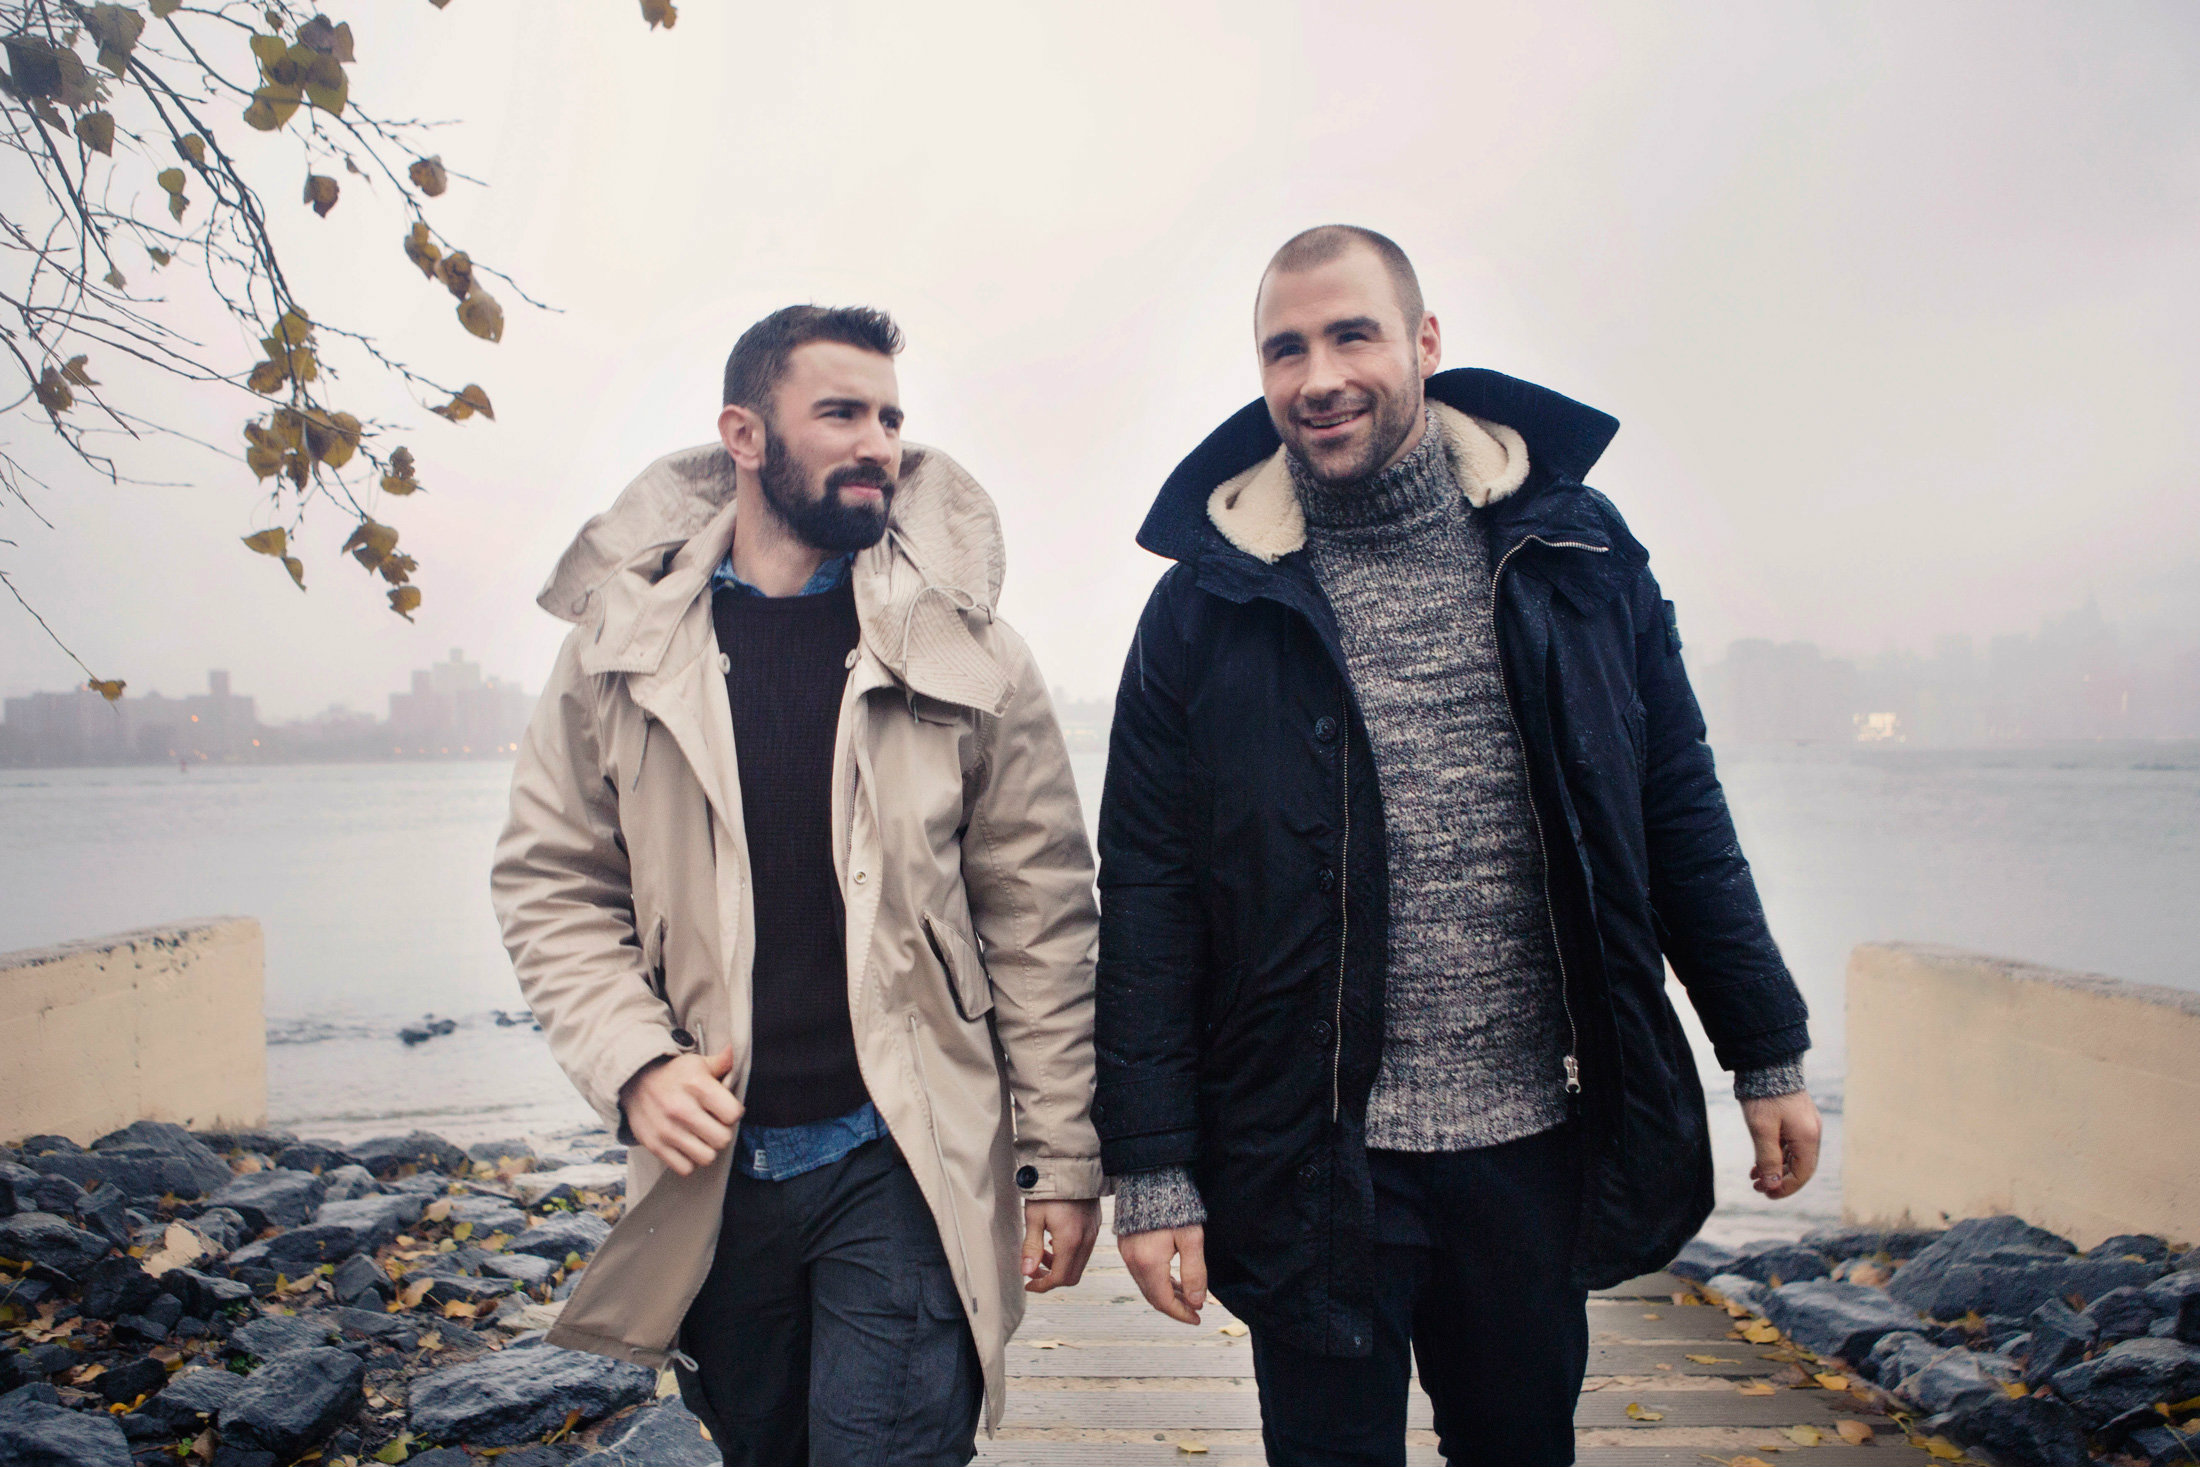 Bloomberg Style Guide road tests designer winter coats with some of the NHL's brightest stars.